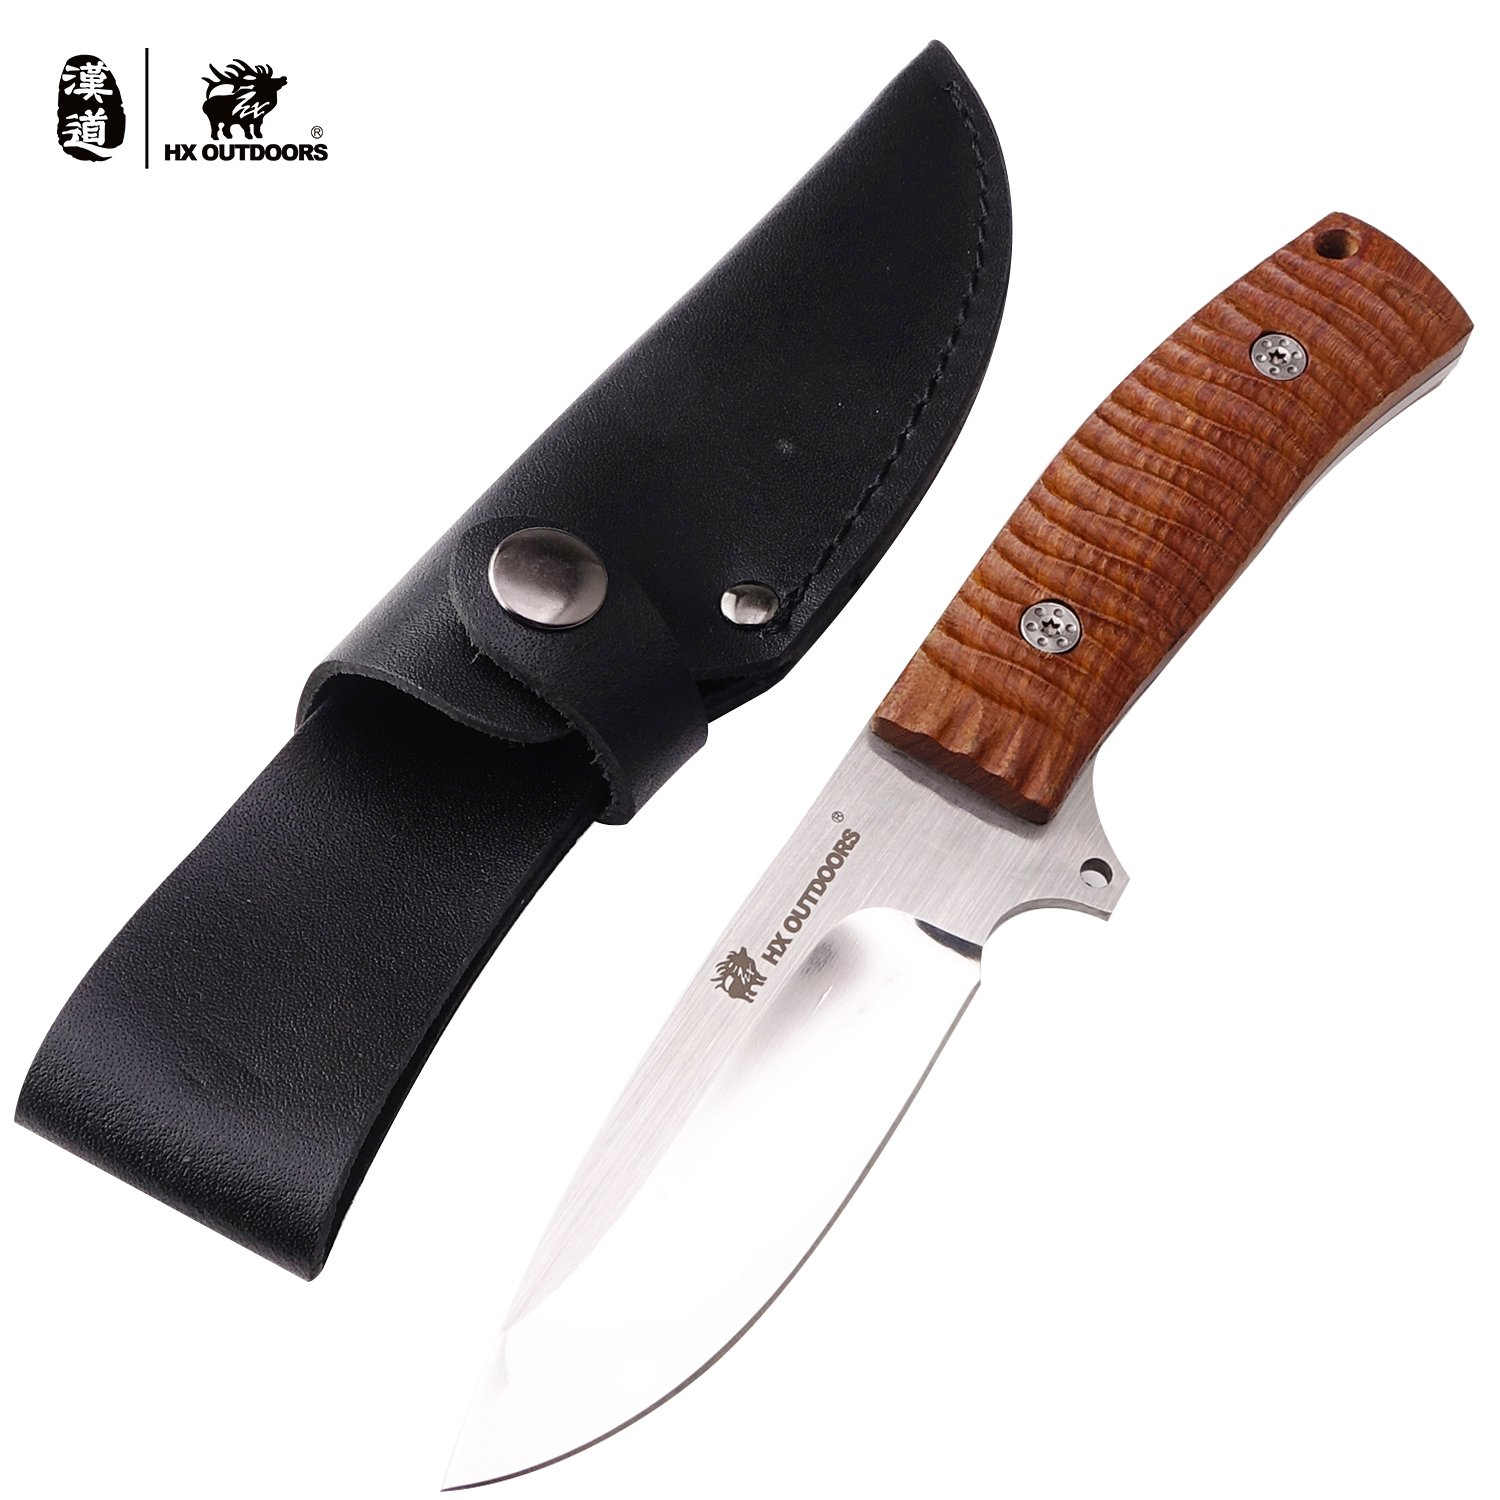 HX outdoors fixed blade tactical knives with sheath,Tanto Blade survival knife,Made of 440 stainless steel and Ergonomics anti-skidding Handle (Lizard)